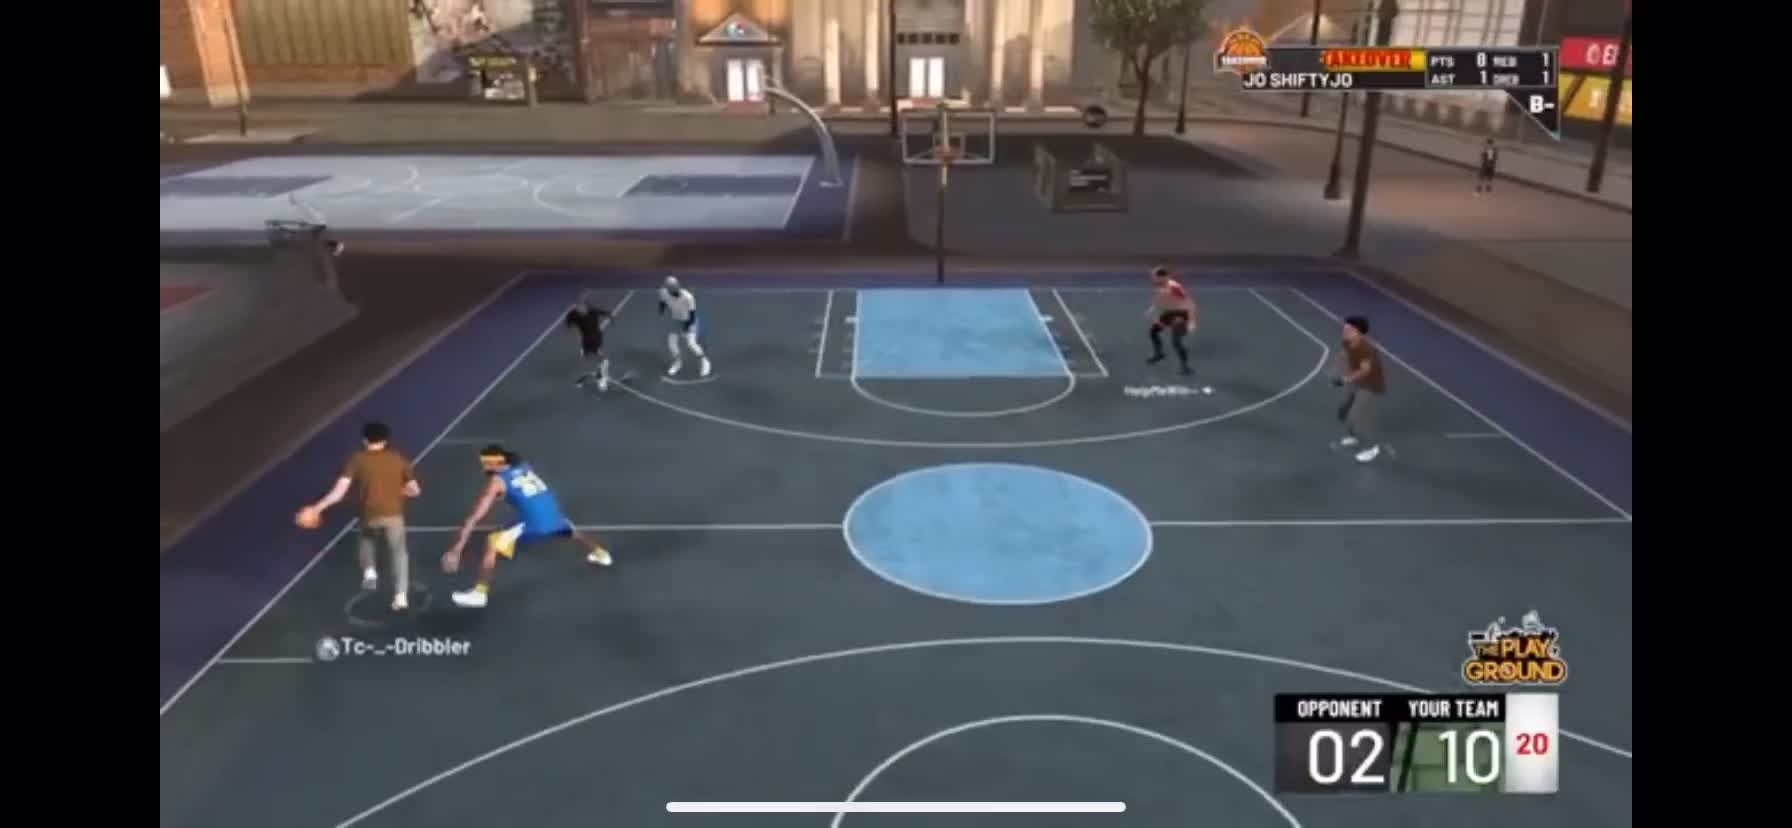 NBA 2K: General - 😒🥶 video cover image 0